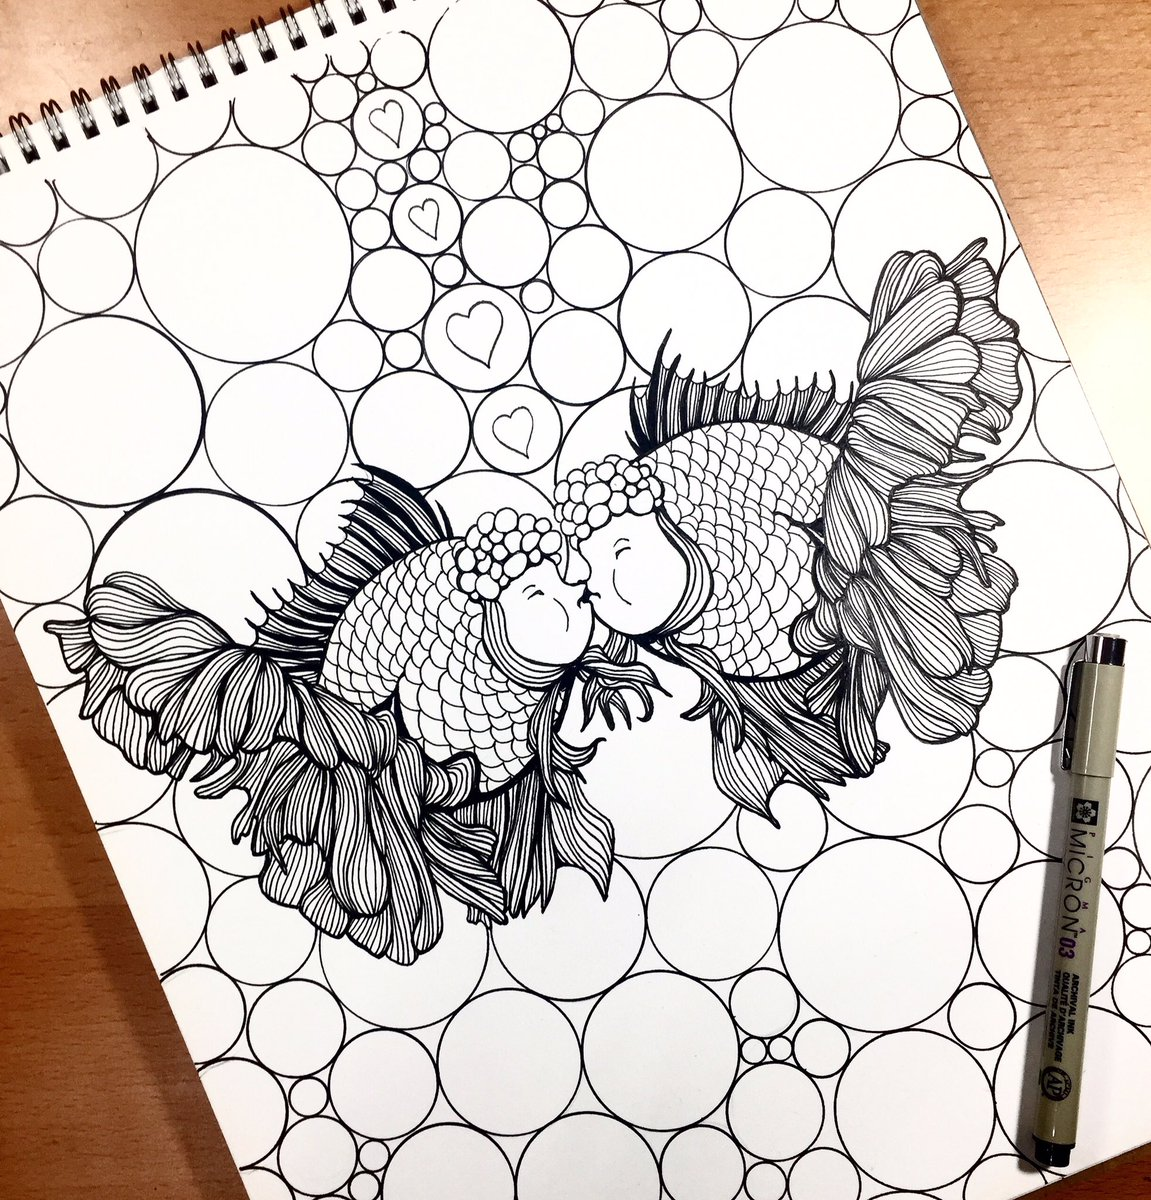 Long Tailed Kissing Fish Coloring Pages - Download & Print Online ... | 1200x1151